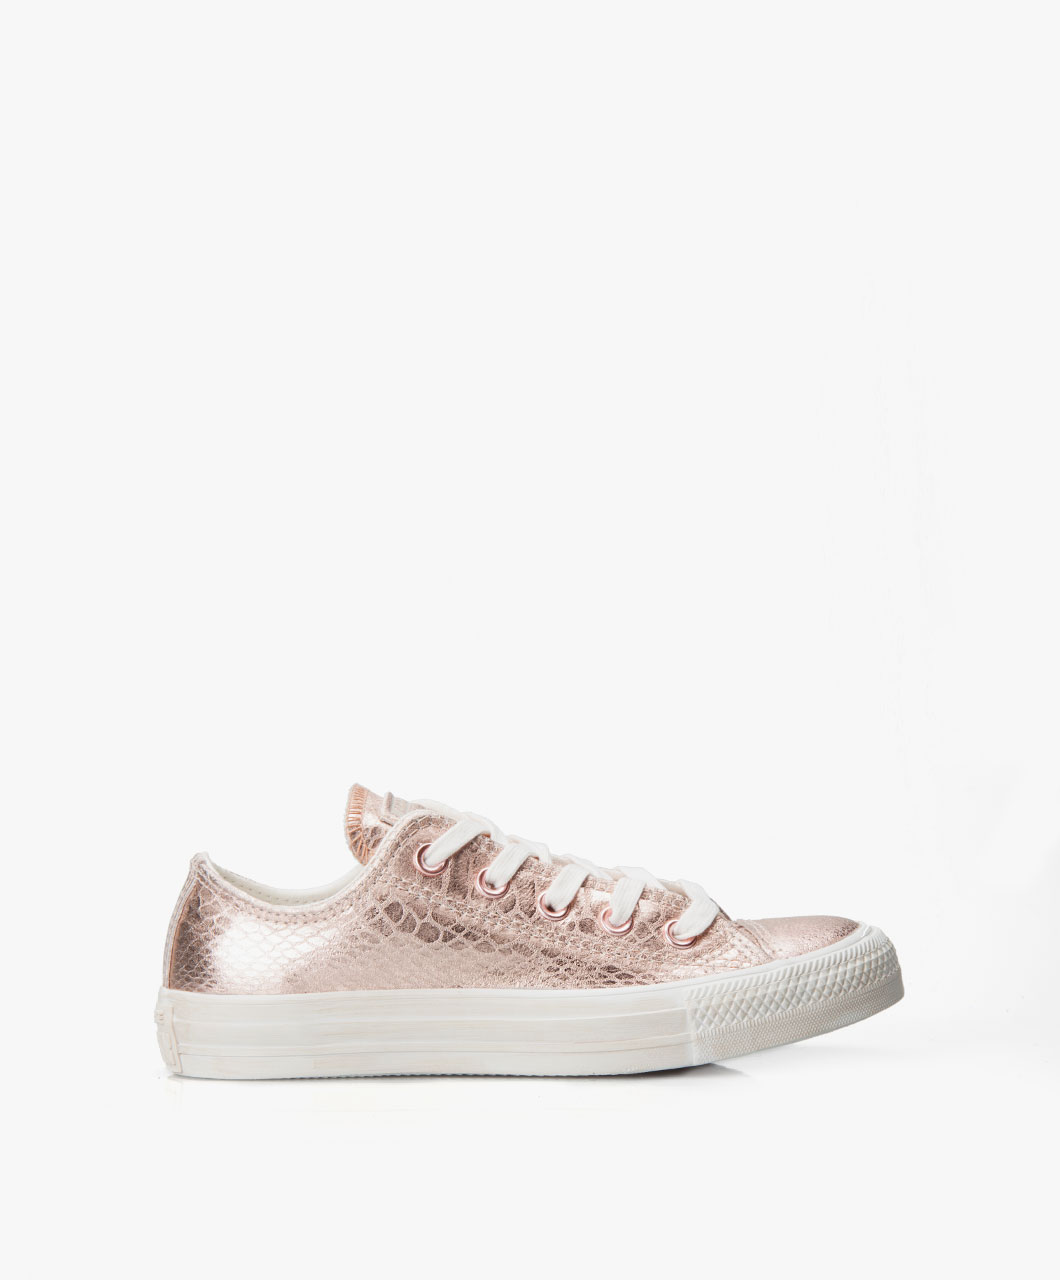 8066623bff8 Converse All Star Ox Metallic Rose • Rosé Gold White